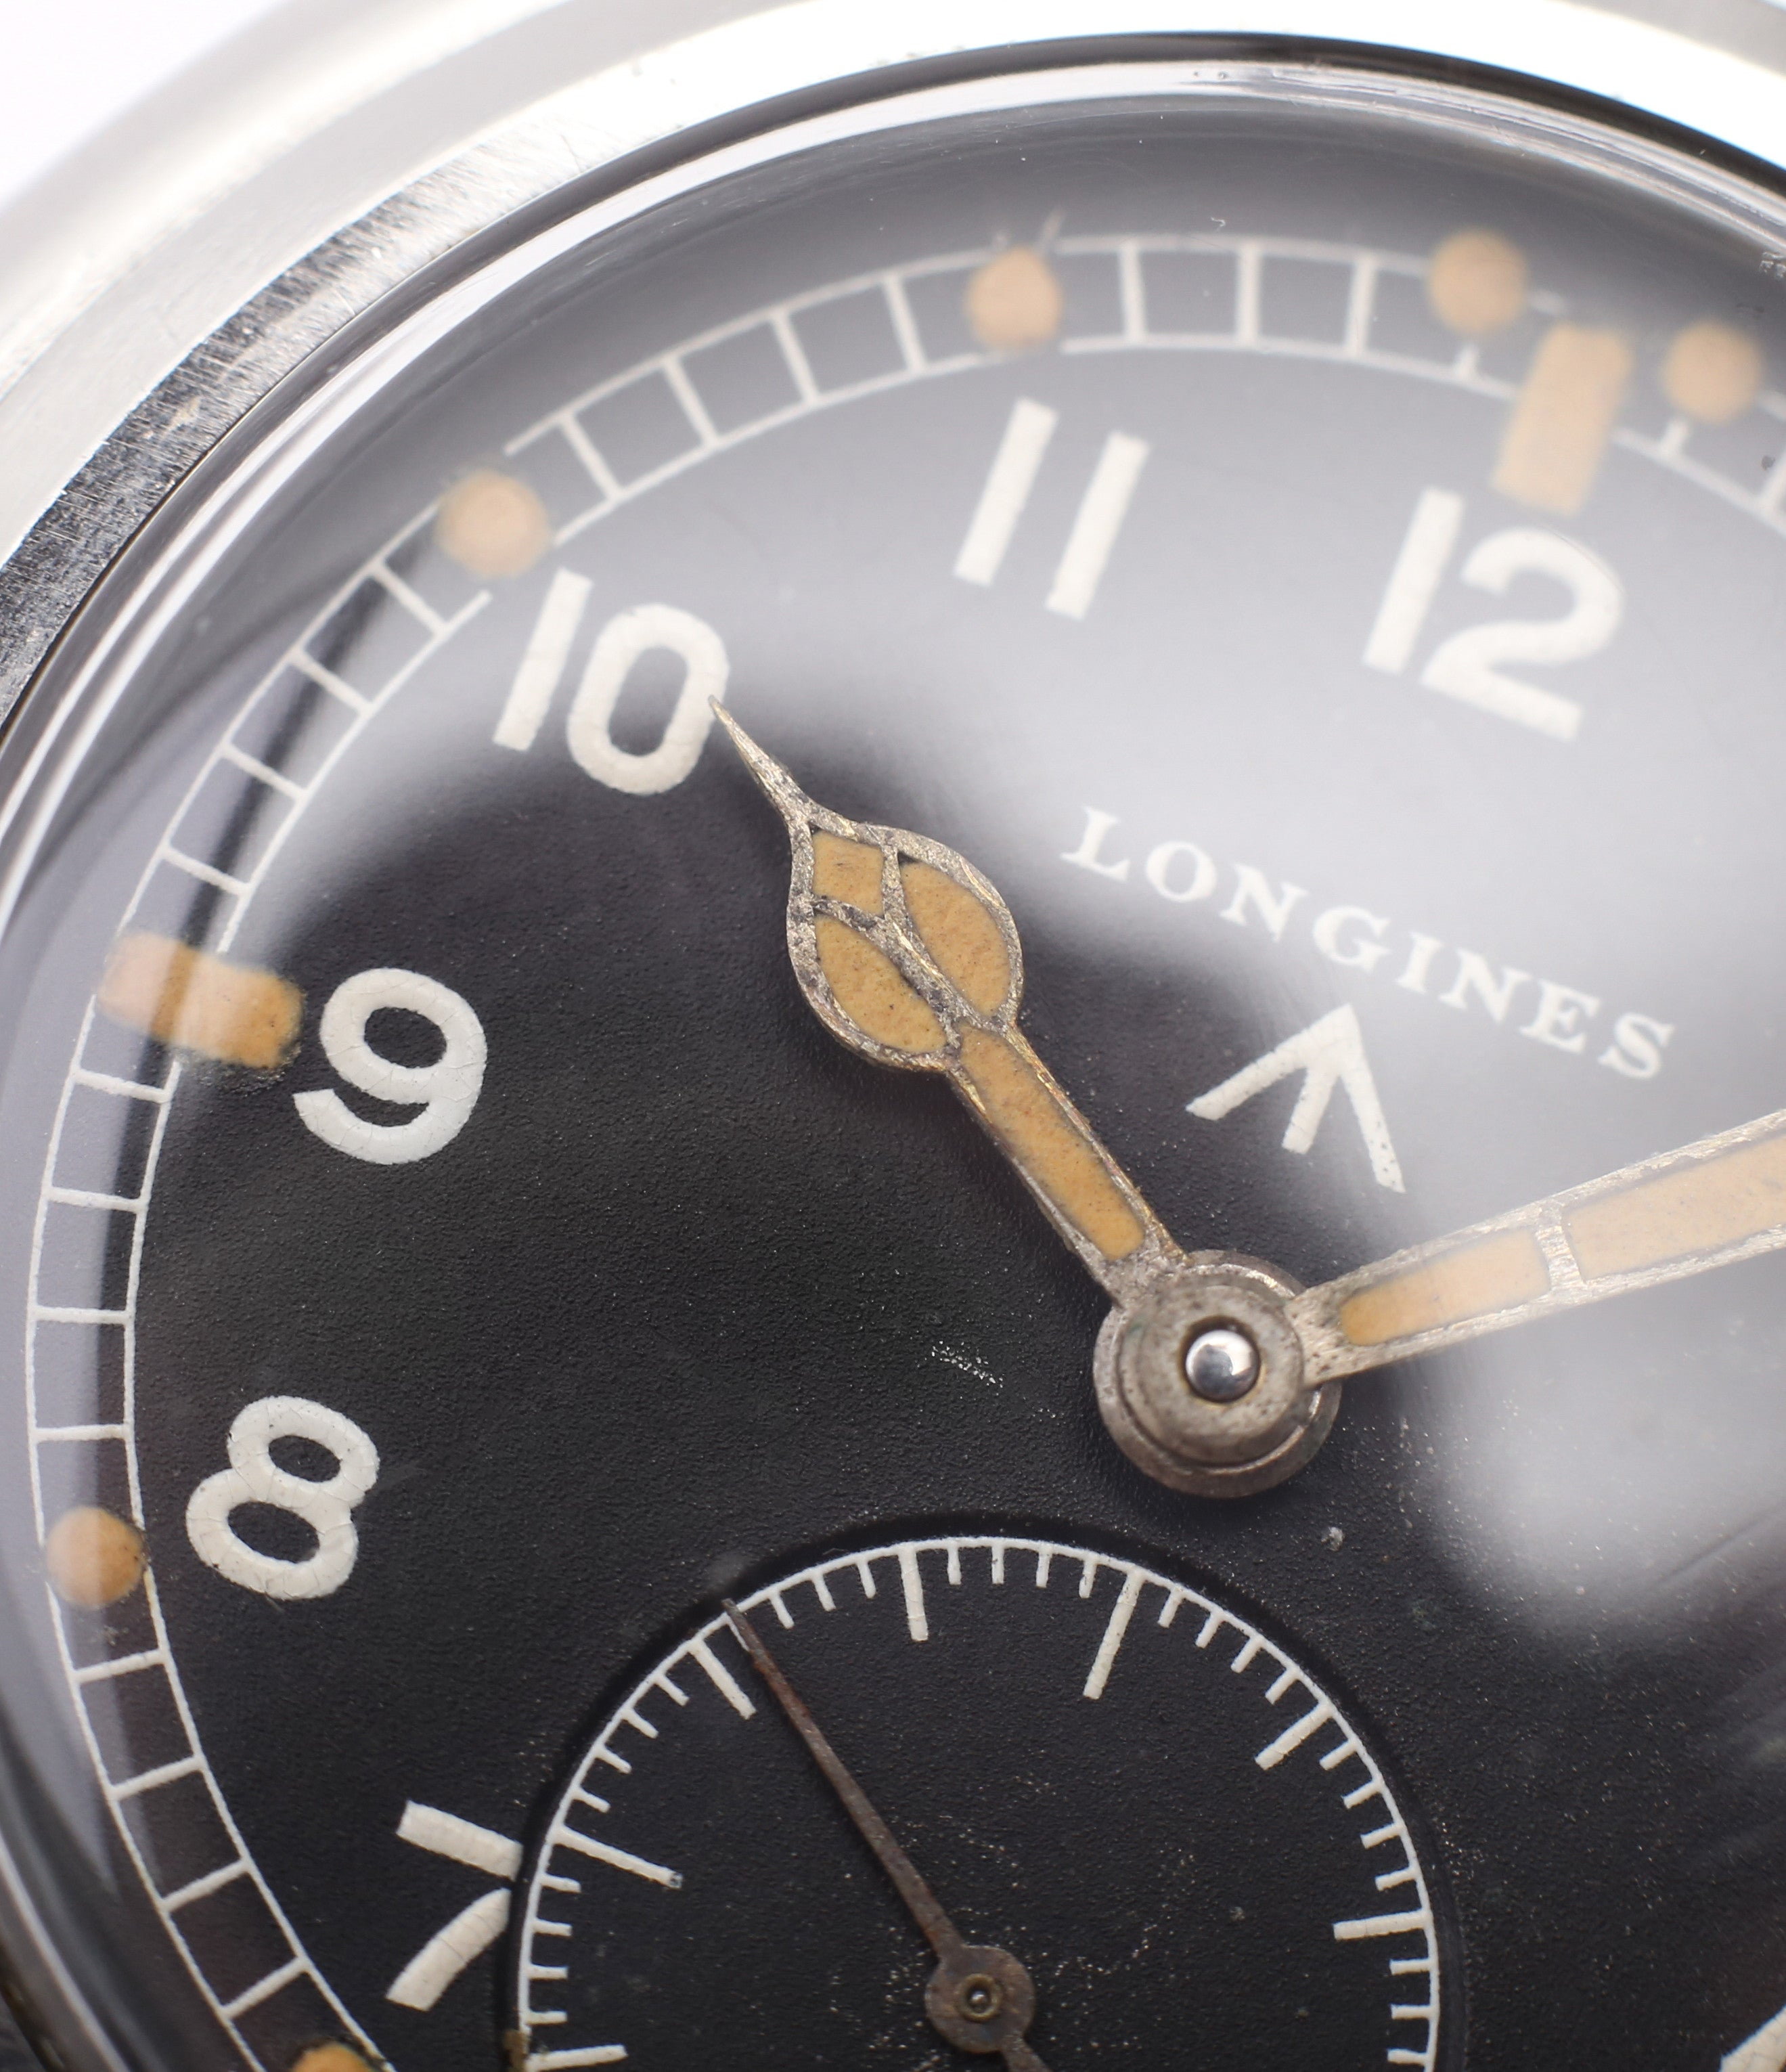 black unrestored dial Longines WWW MoD British military vintage watch F6870 for sale online at A Collected Man London vintage watches specialist